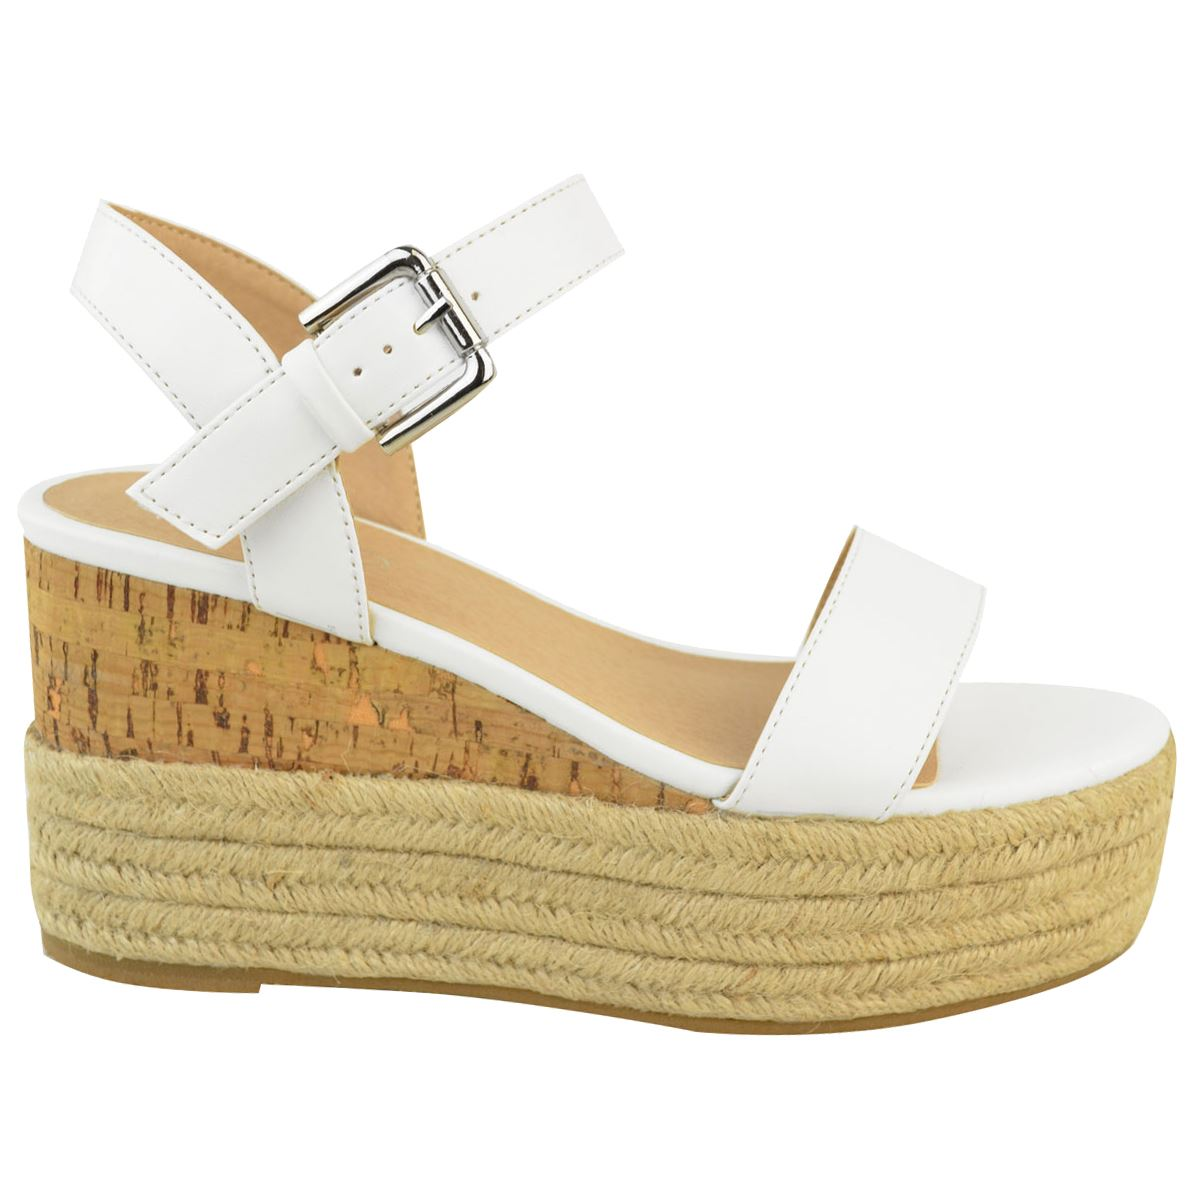 Womens-Ladies-Summer-Platform-Ankle-Strappy-Wedges-Open-Toe-Sandals-Shoes-Size thumbnail 9